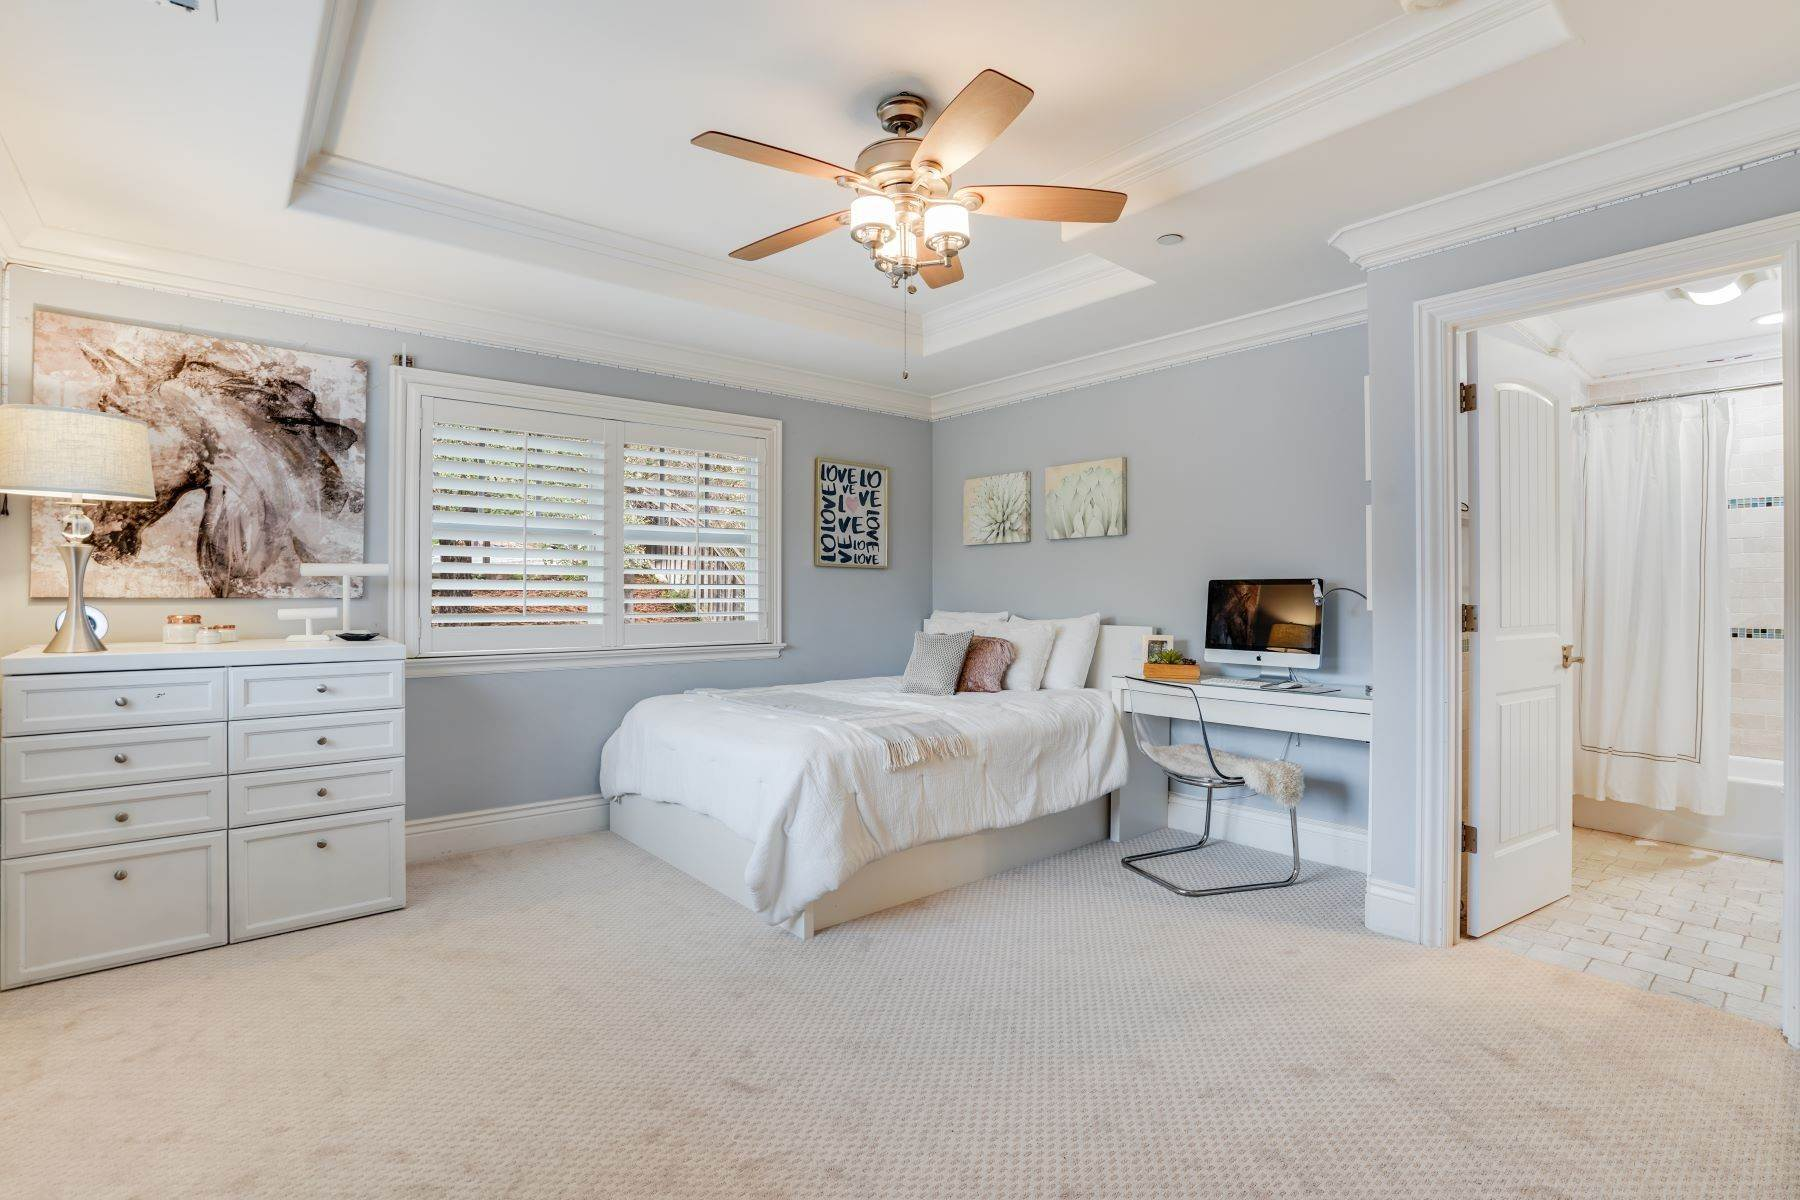 27. Single Family Homes for Sale at Exquisite Home in Excellent San Carlos Location 38 Pine Avenue San Carlos, California 94070 United States